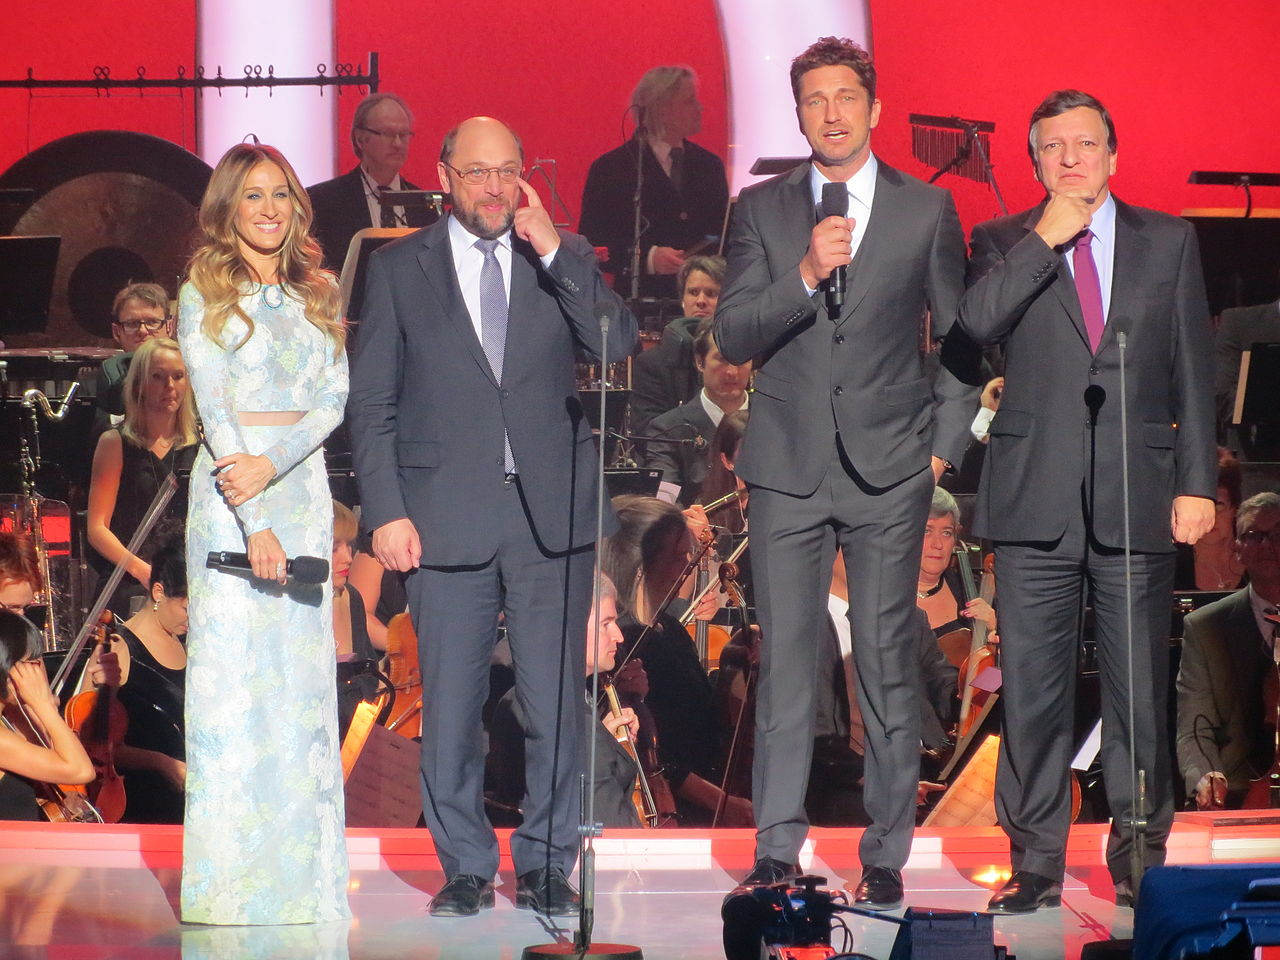 1280px-Nobel_Peace_Concert_2012_IMG_4451